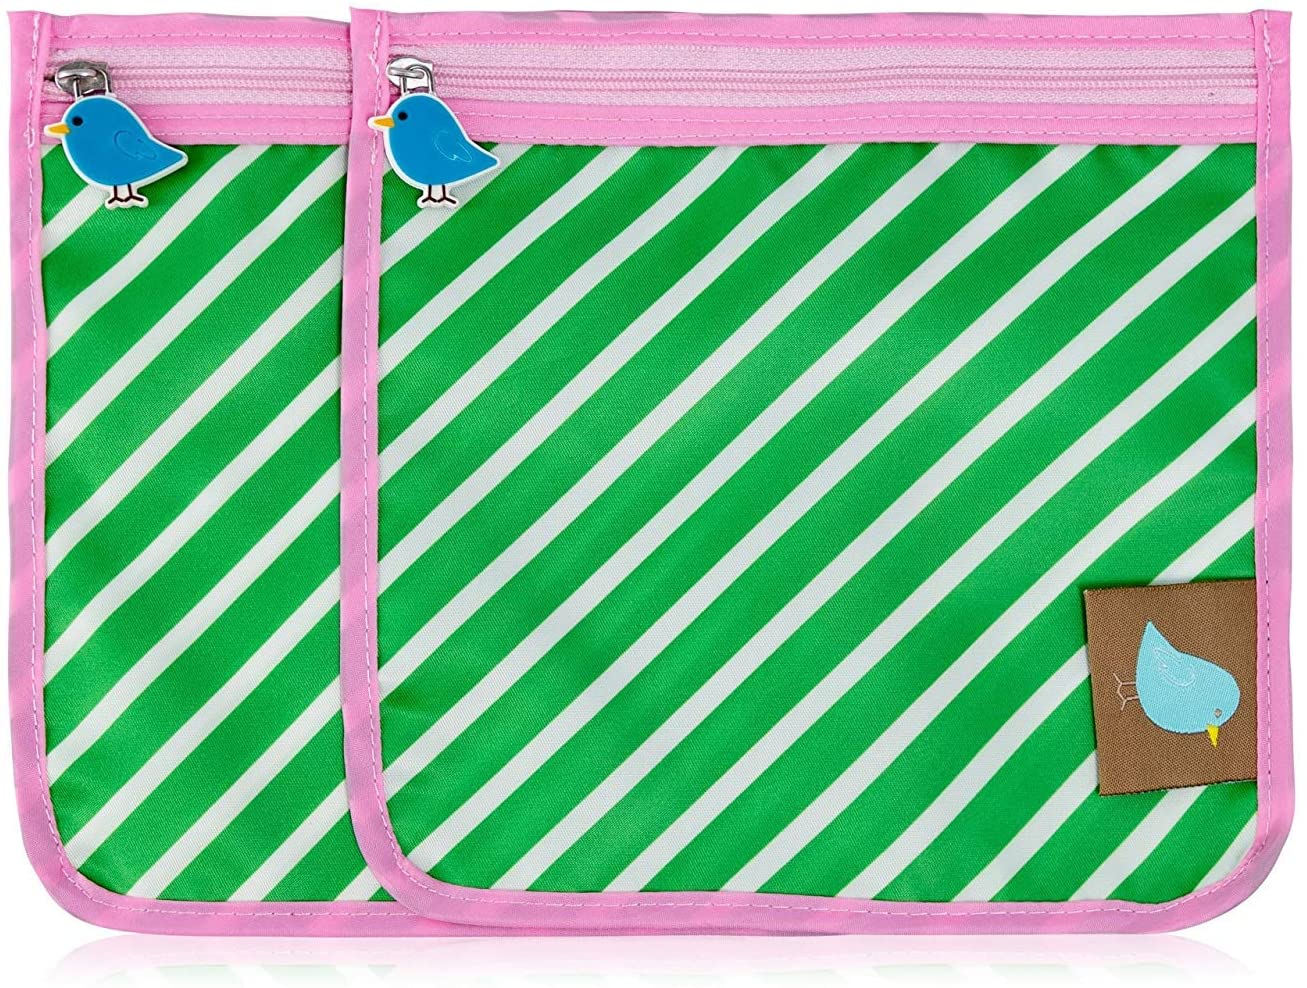 Jaq Jaq Bird Reusable Snack Pouch (2 Pack) (Kelly Stripe)